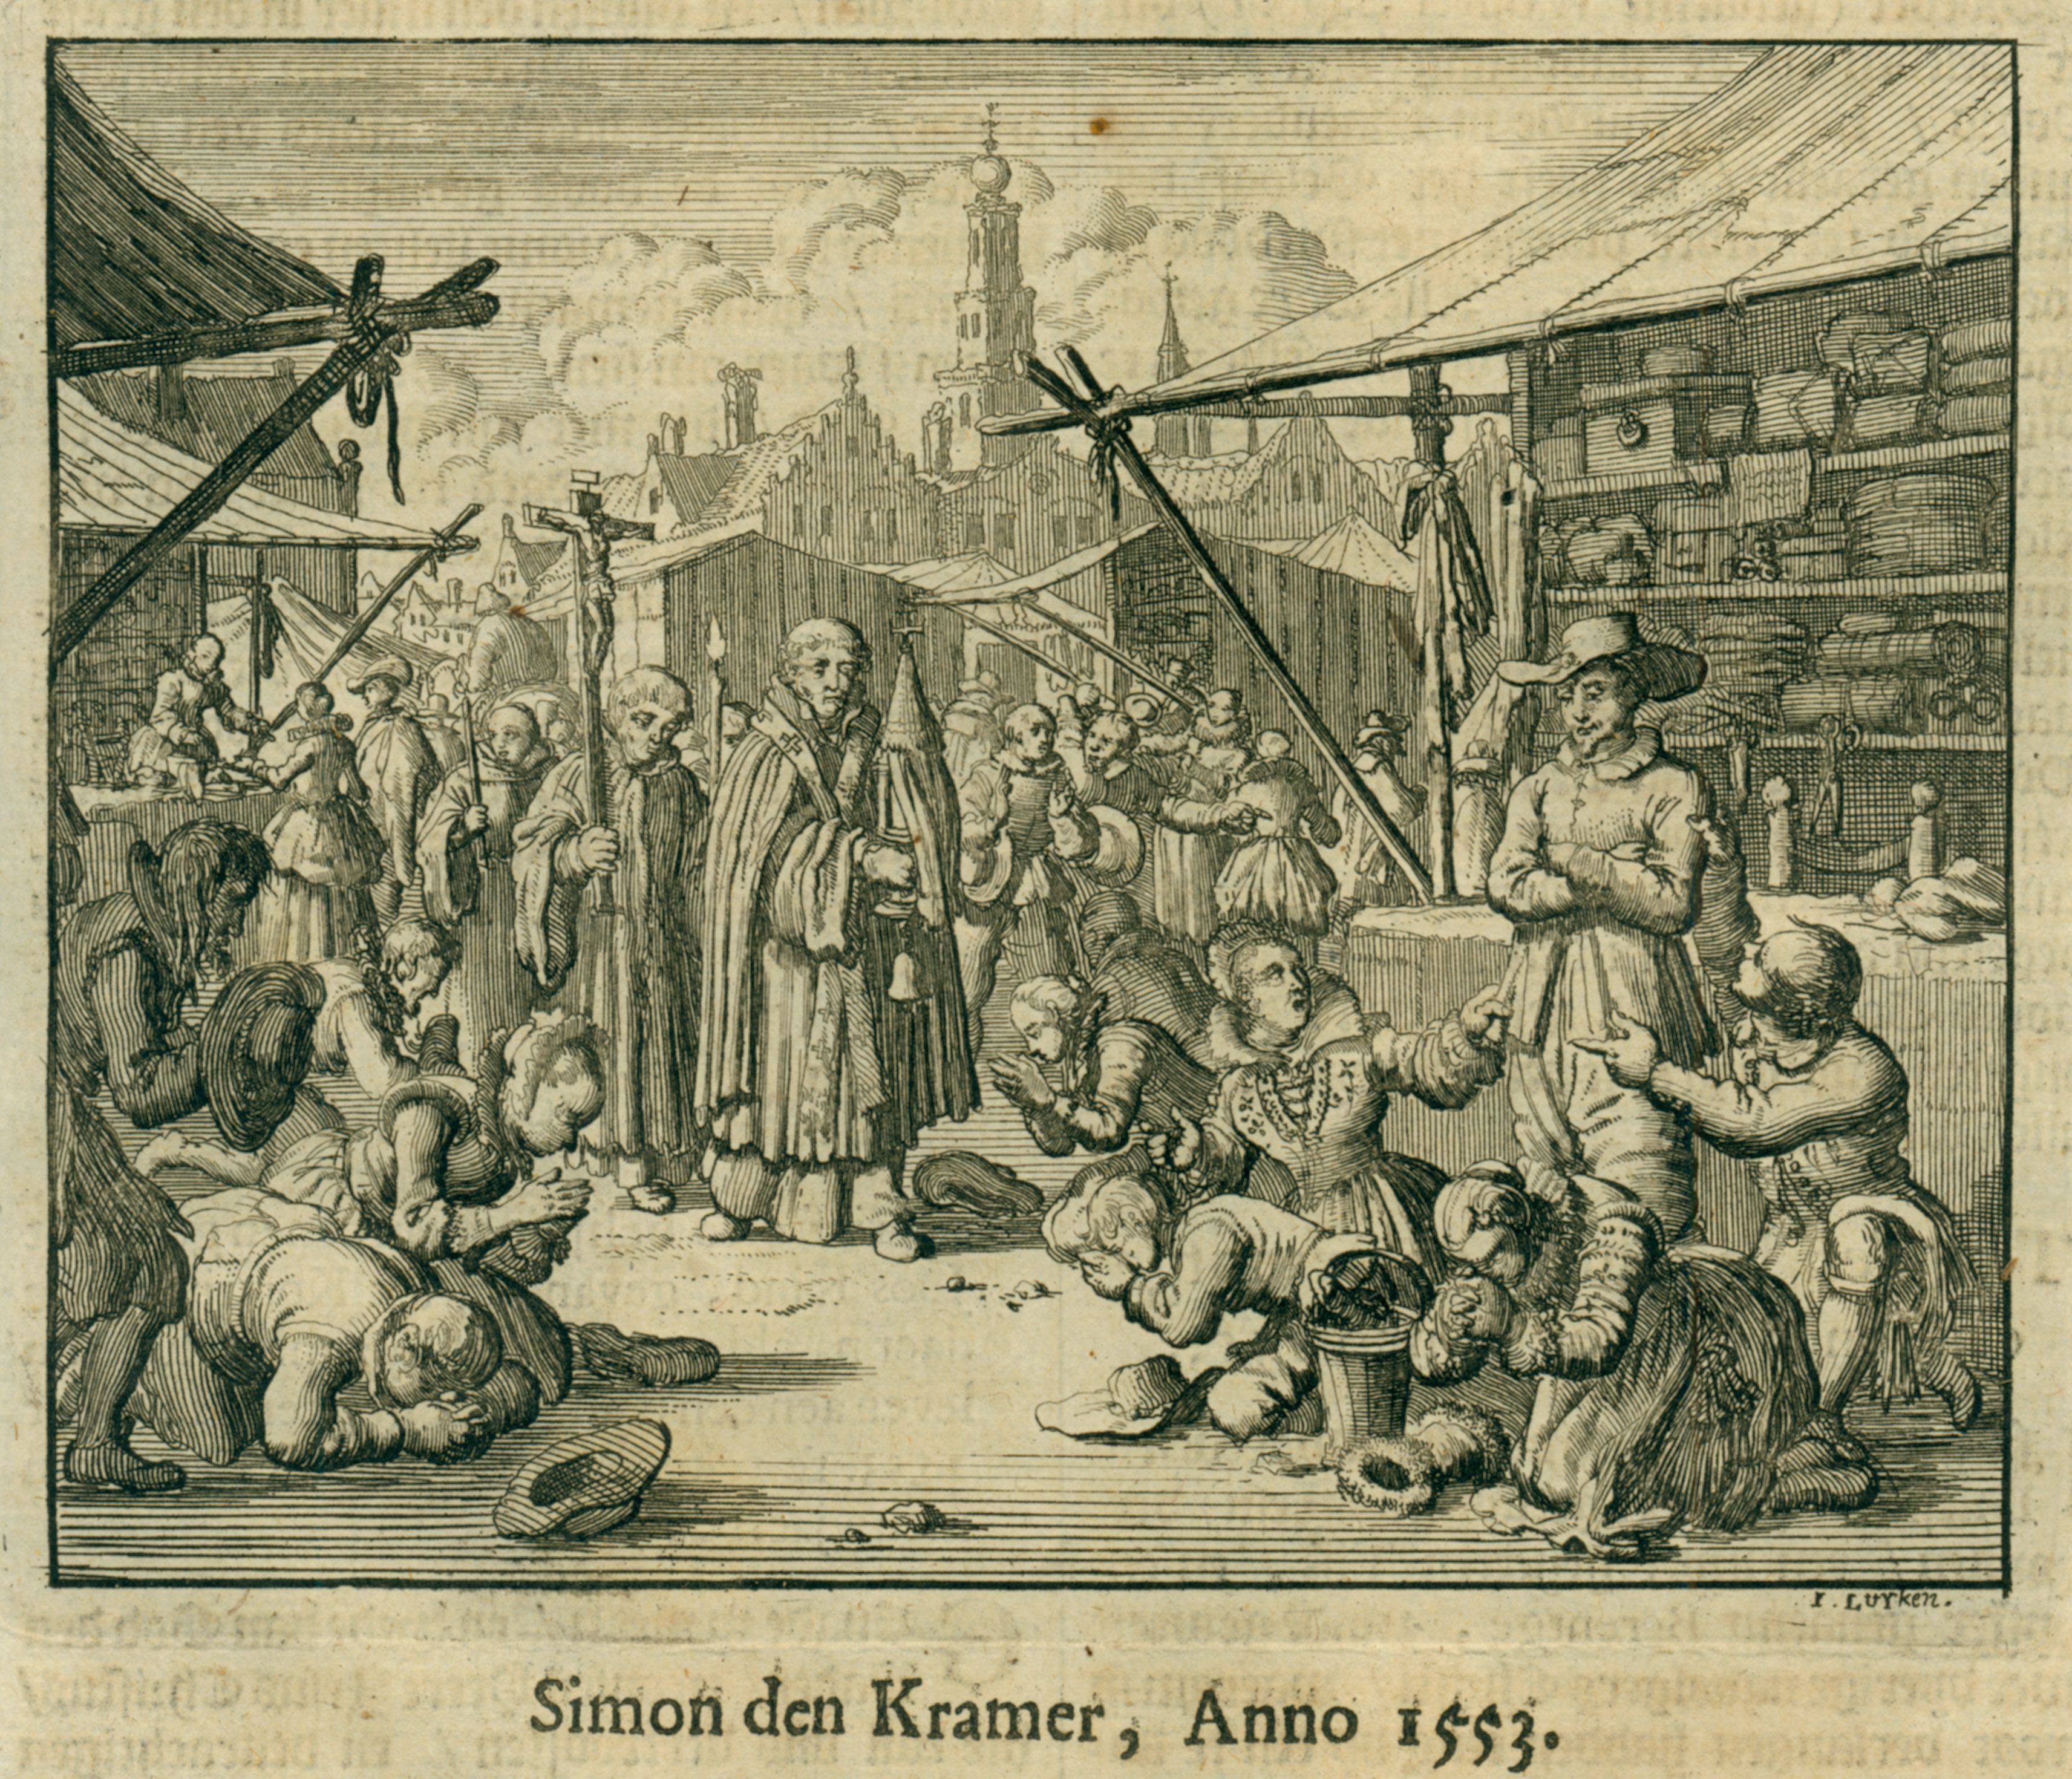 Simon de Kramer refused to bow to the communion wafer as it was paraded through the streets of Bergen op Zoom, 1553